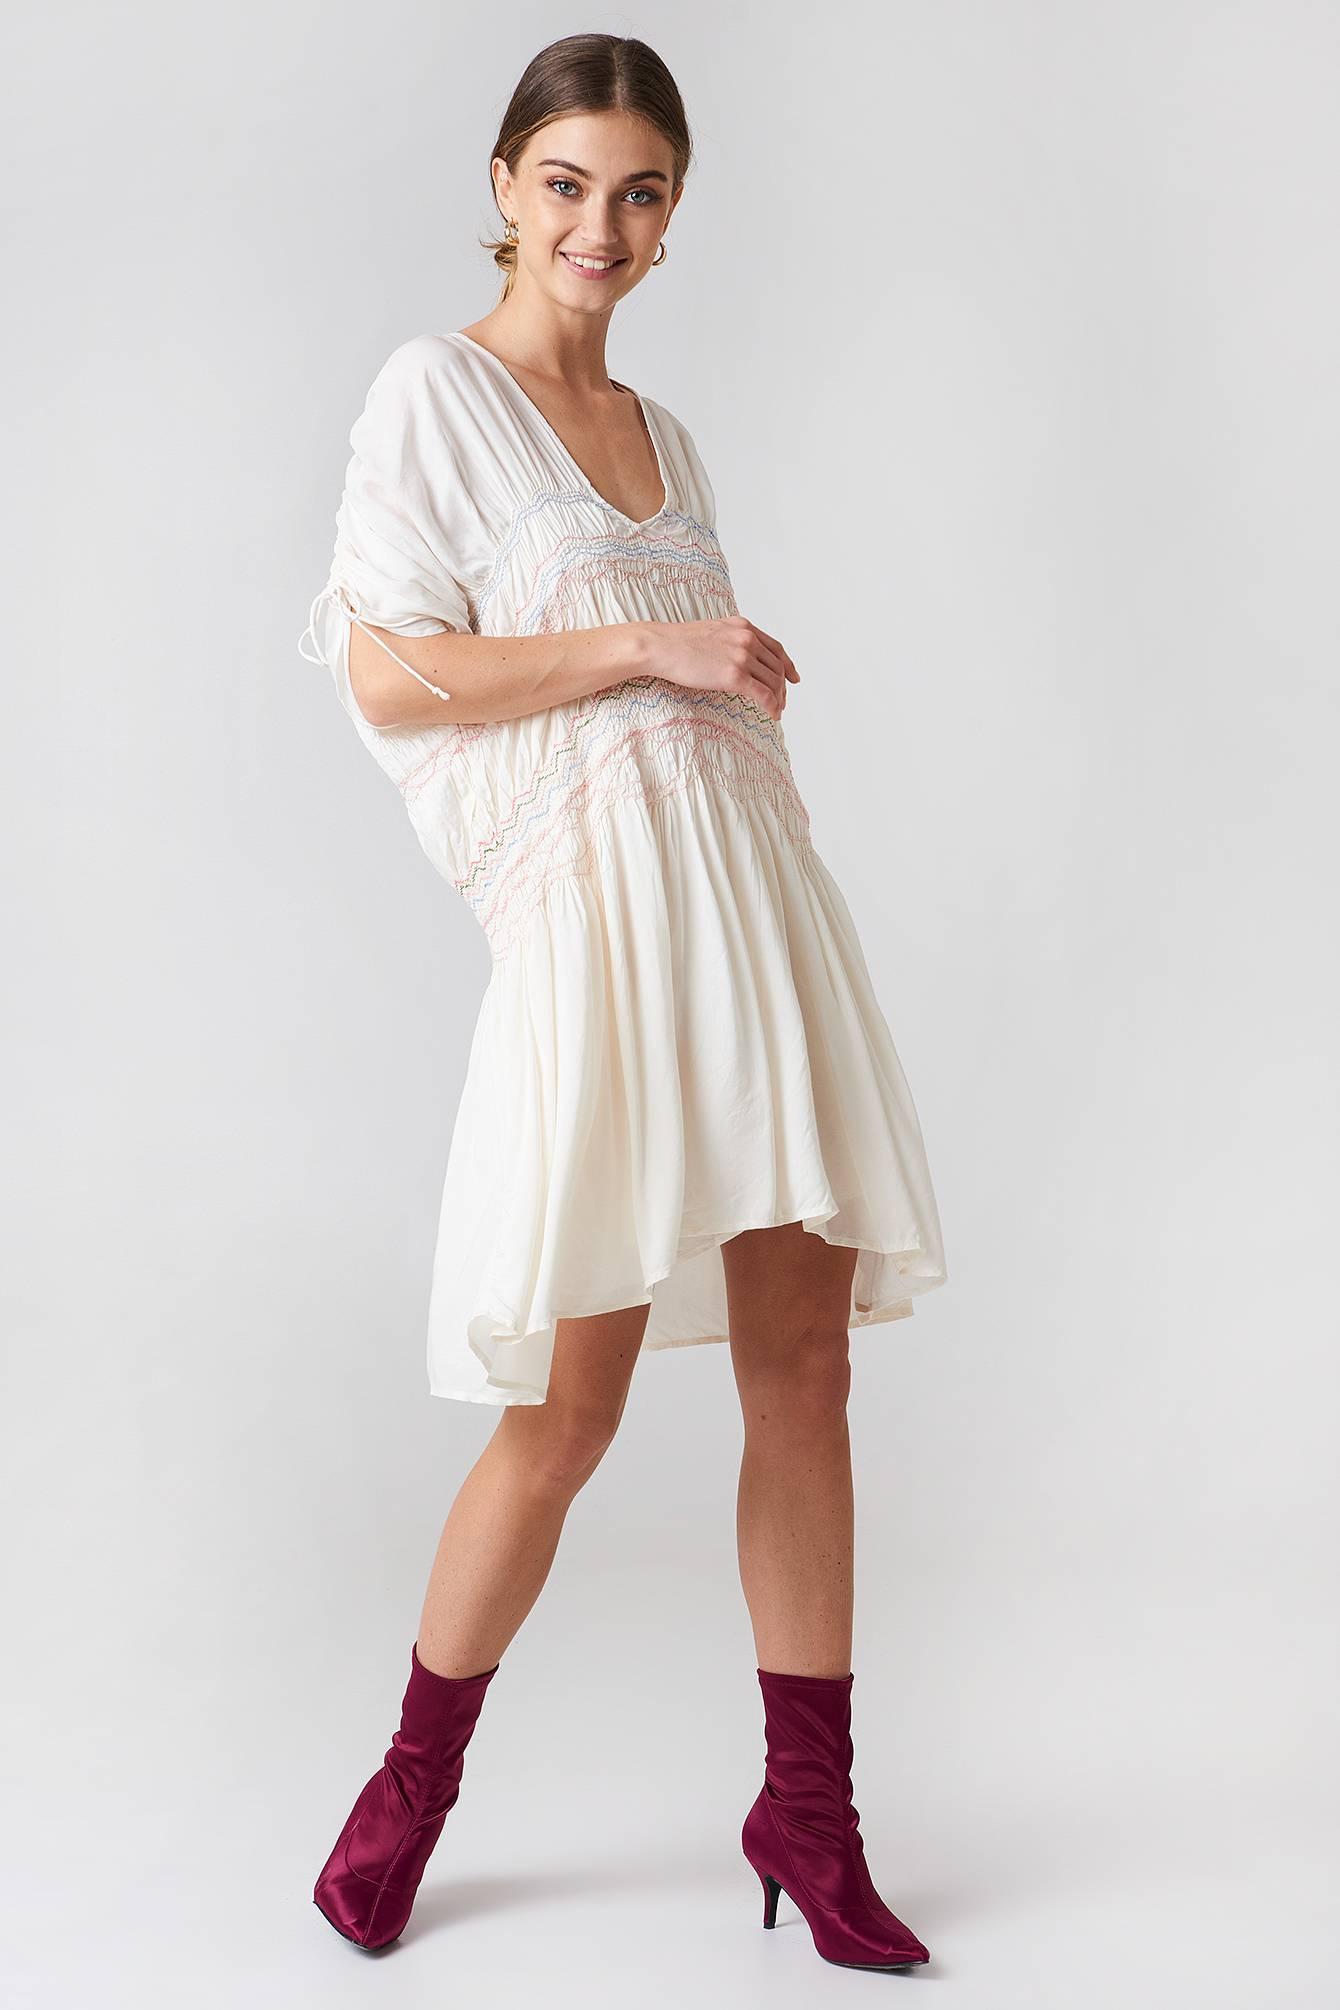 Free People Love Of The Run Midi Dress - White